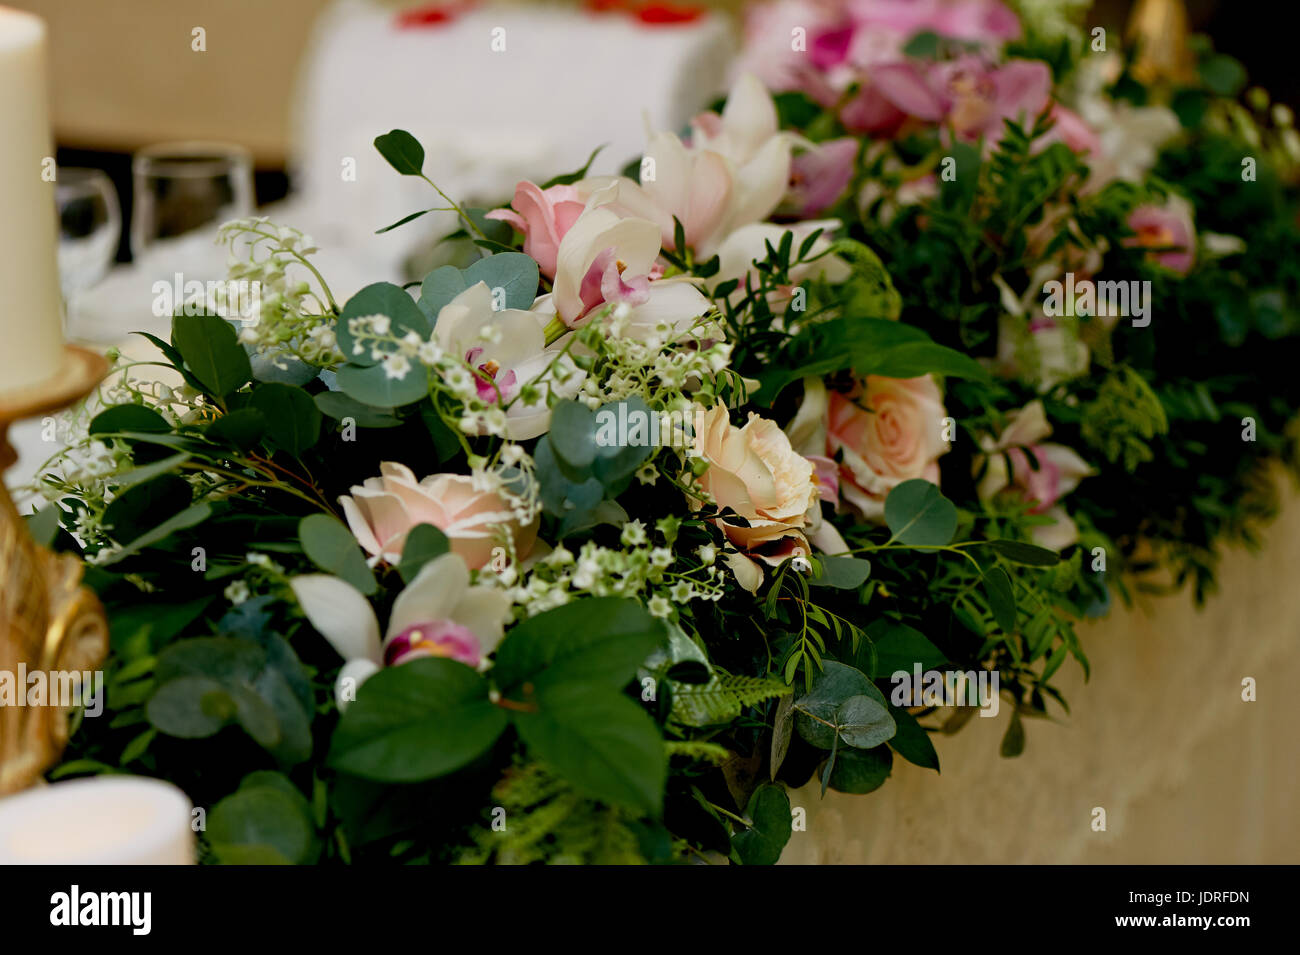 Wedding table decoration newlyweds songs on the table of flowers wedding table decoration newlyweds songs on the table of flowerse pink and white palette rose orchid mightylinksfo